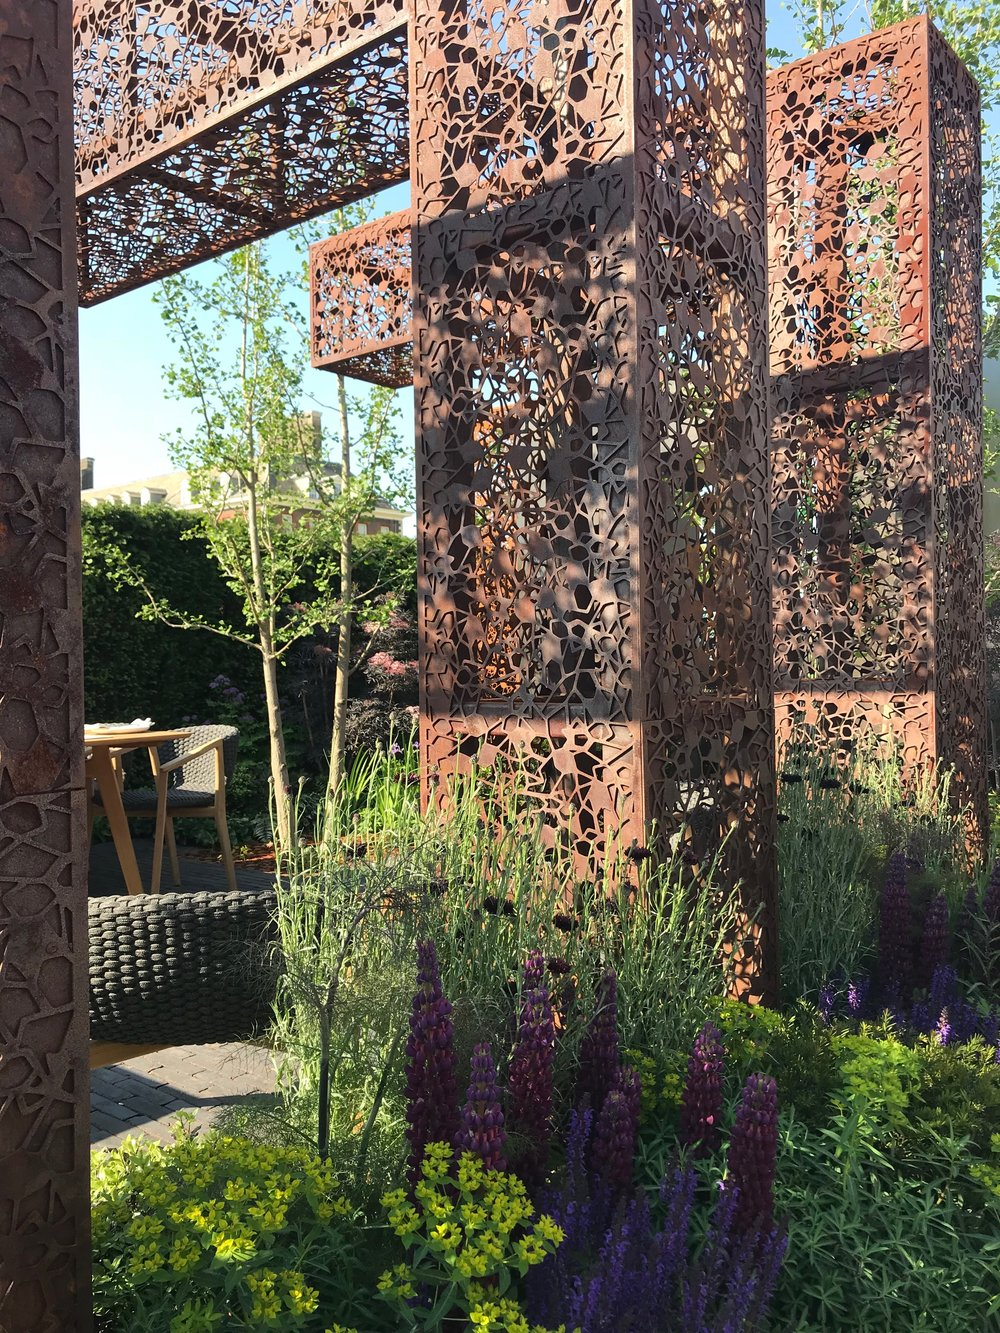 The Urban Flow garden had beautiful 'fretwork'